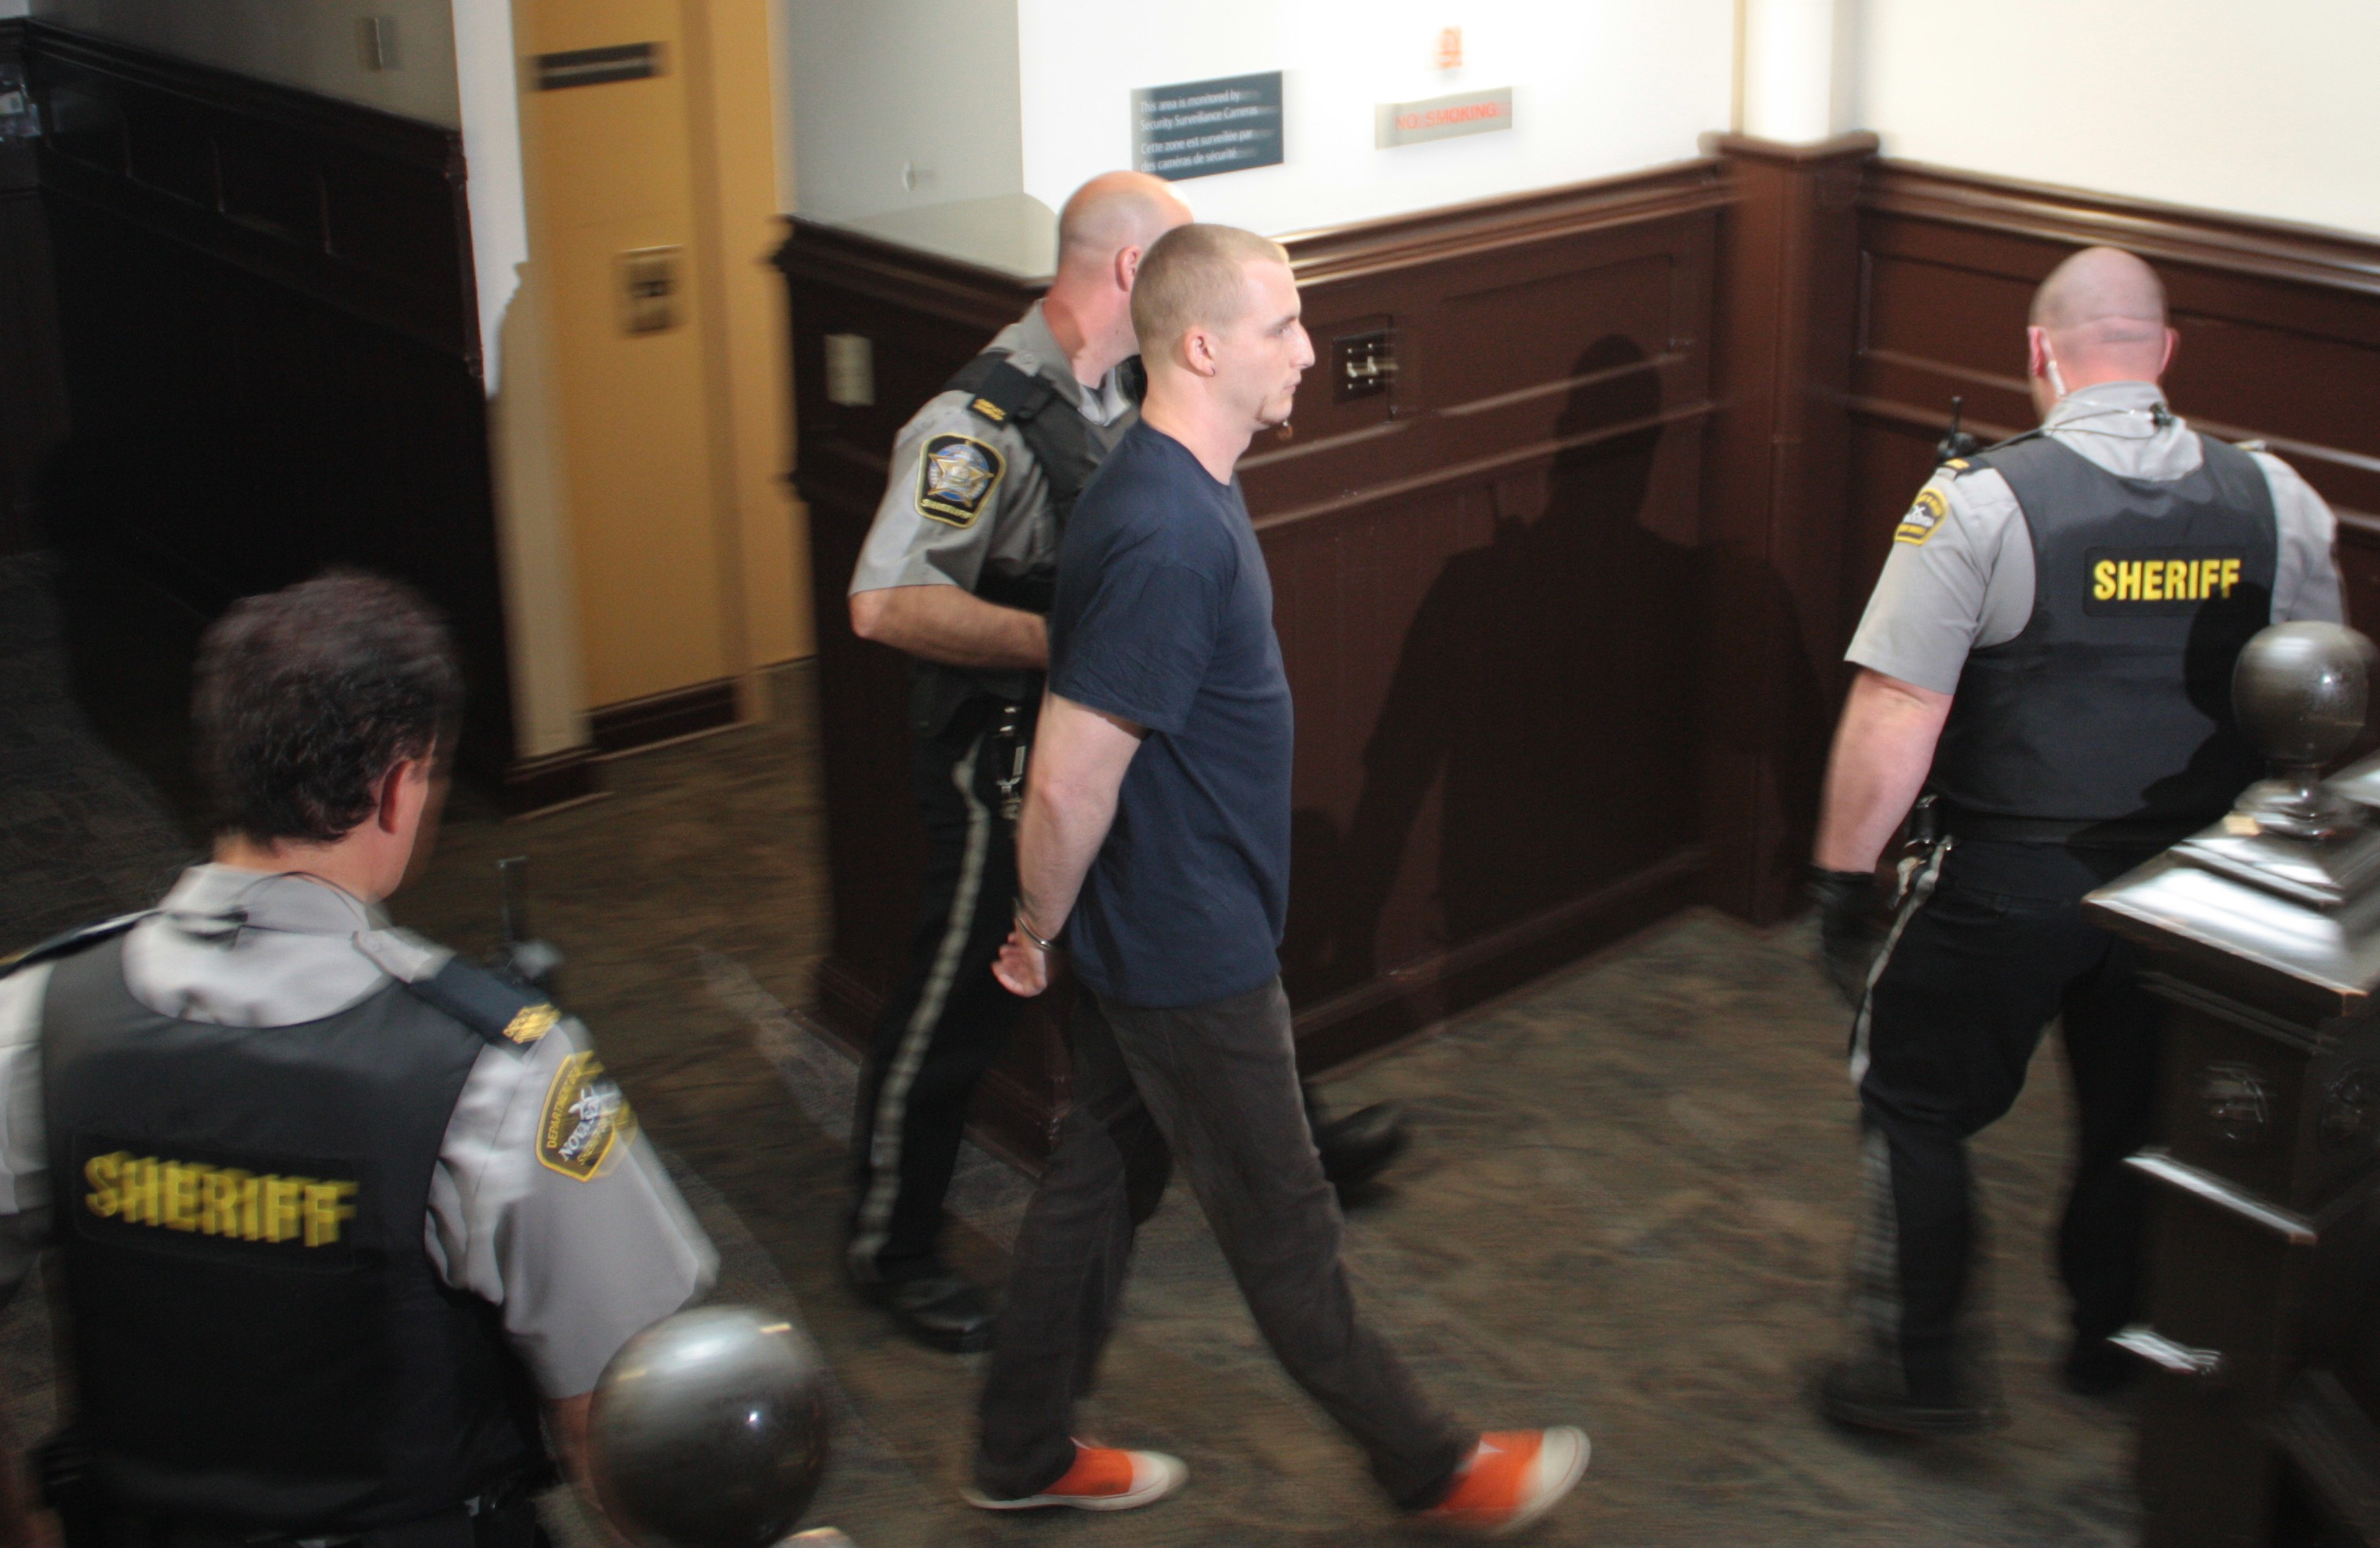 Blake Leggette, accused of the first-degree murder of Loretta Saunders, is escorted by sheriffs at Halifax provincial court on Monday. - PHOTO HILARY BEAUMONT